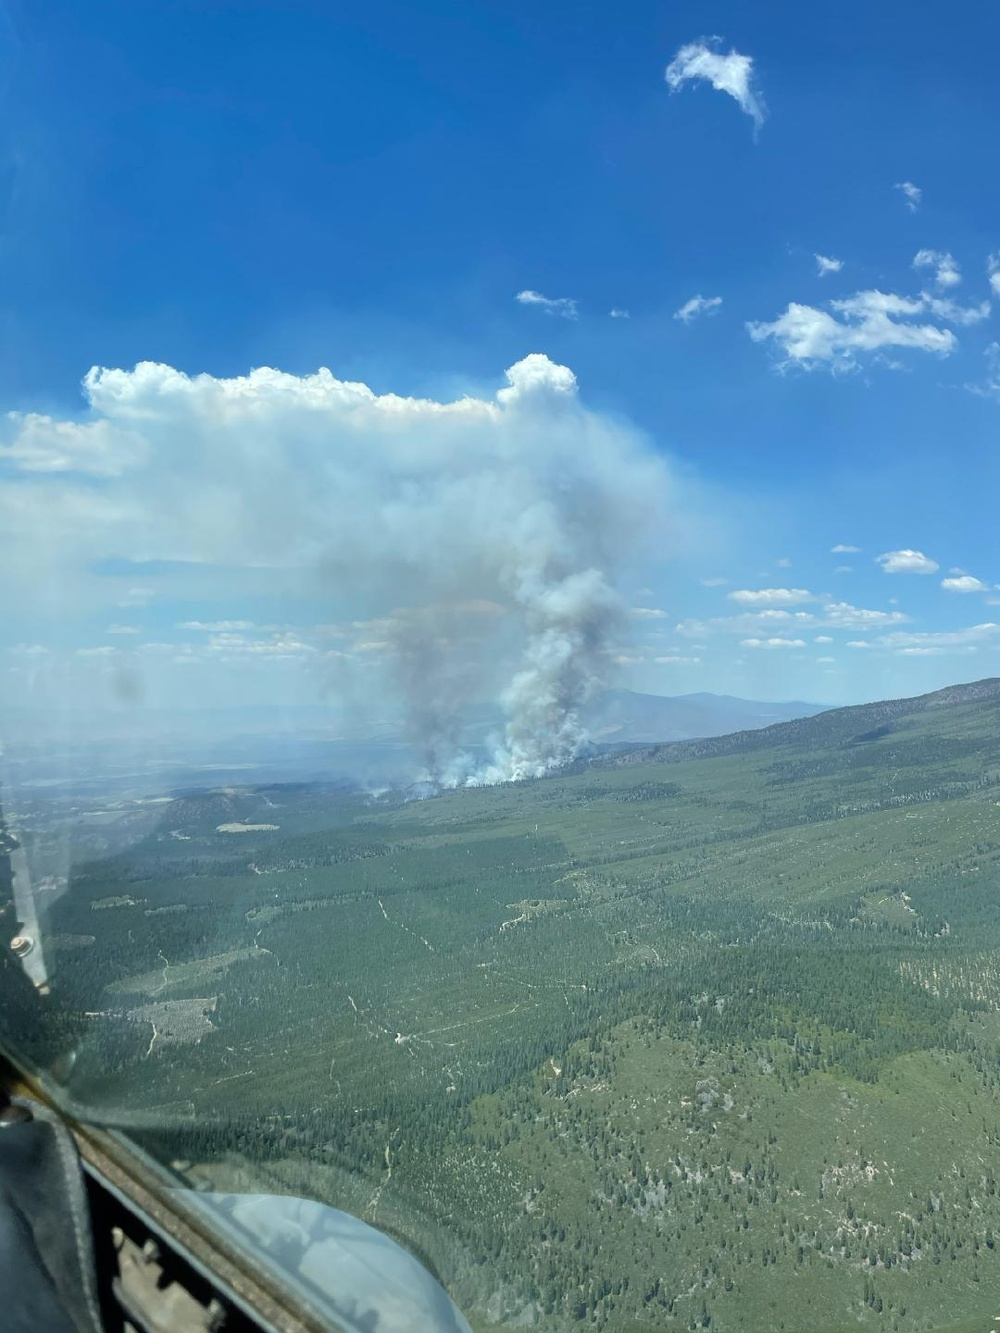 High Rollers' first fire retardant drop of the 2021 firefighting season